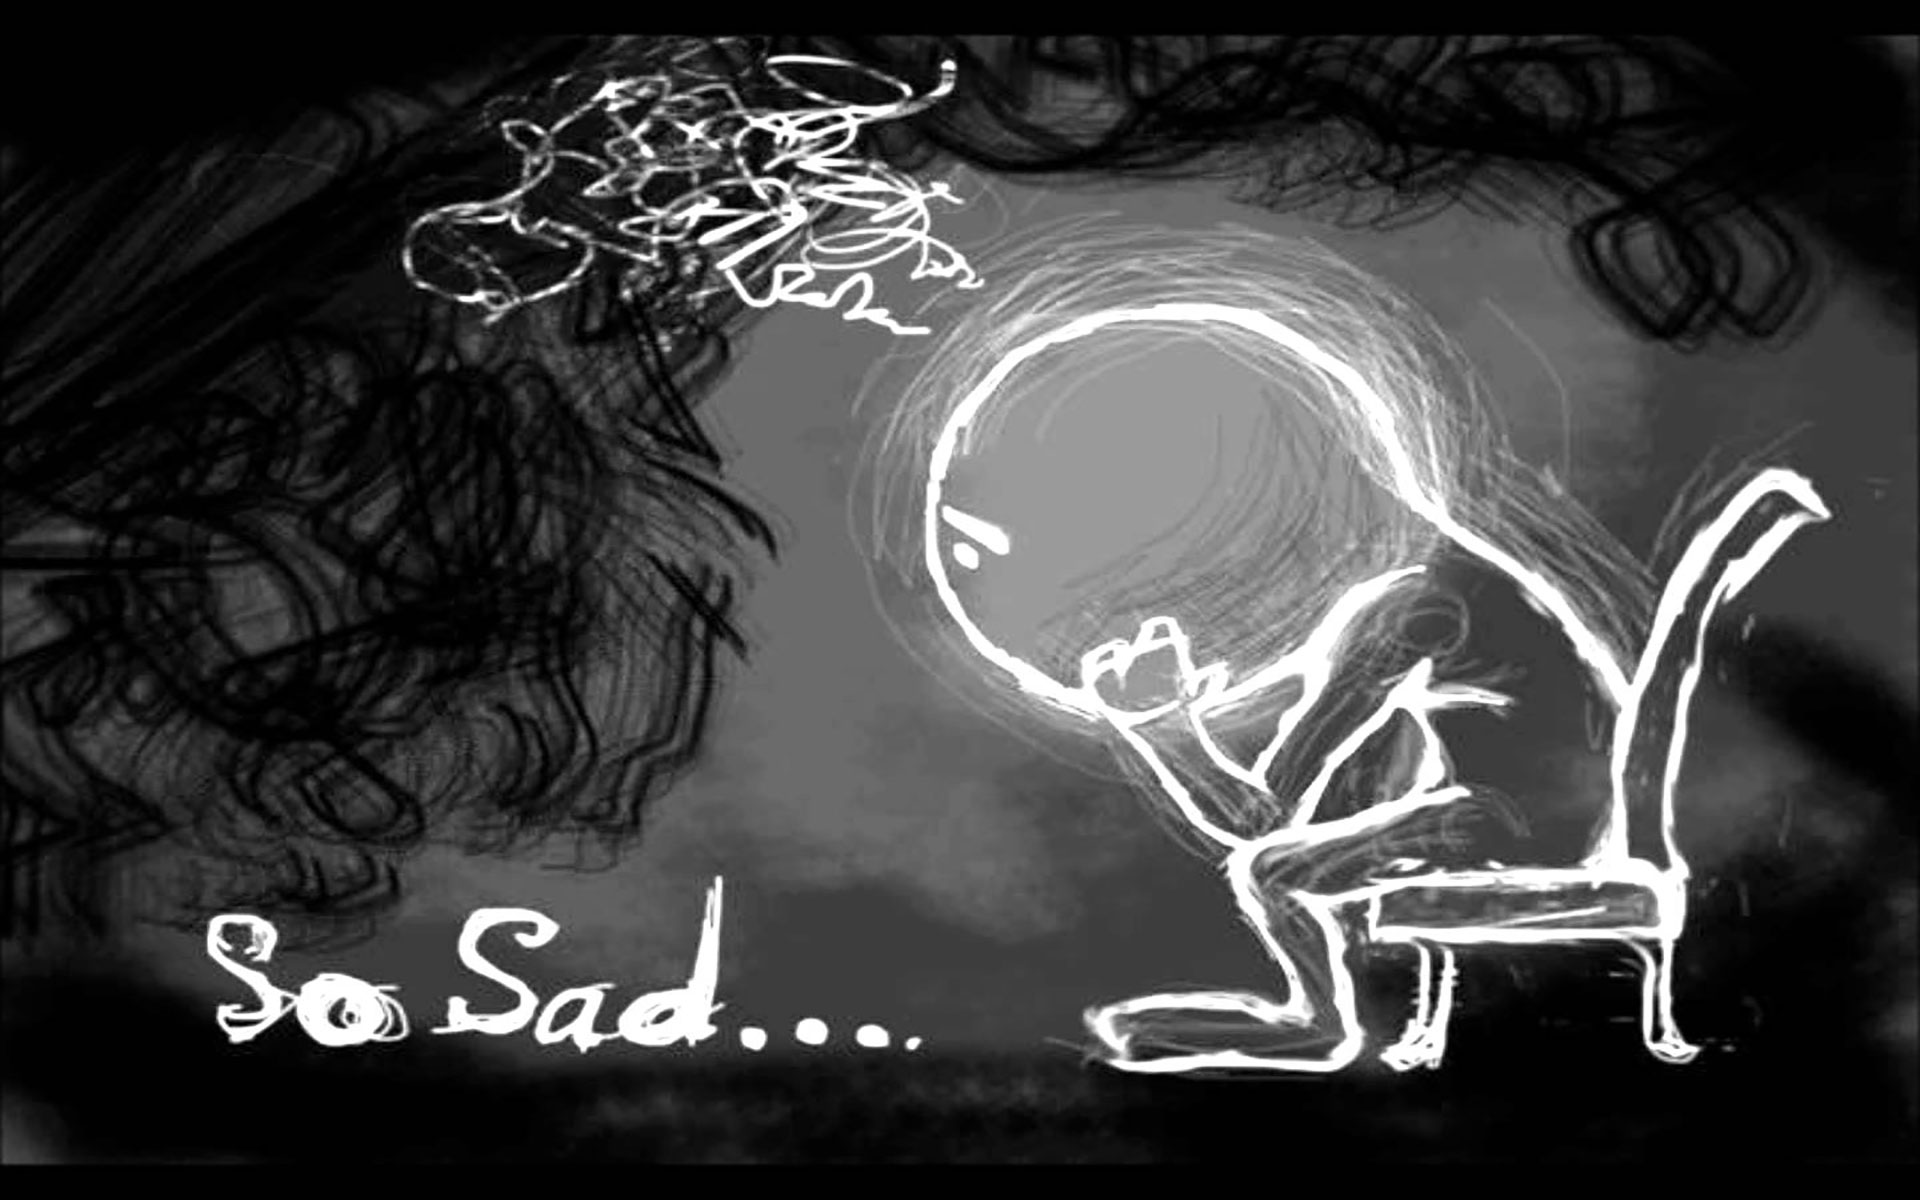 Free Download Sad Wallpapers Hd Depression Wallpaper